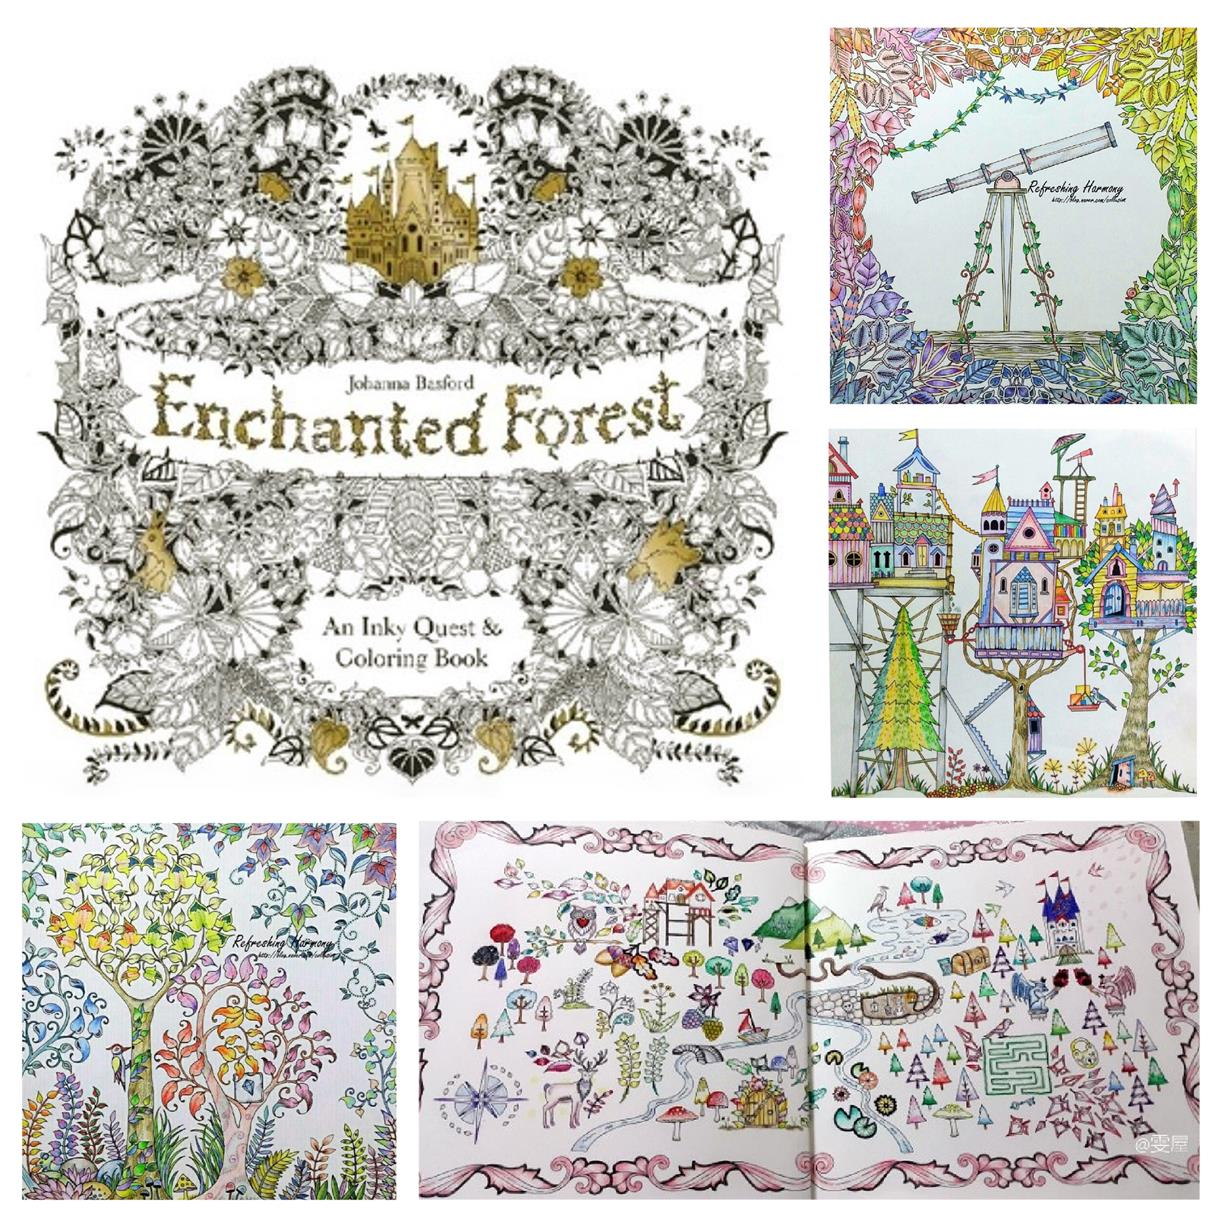 Enchanted Forest Colouring Book End 11 19 2015 415 PM